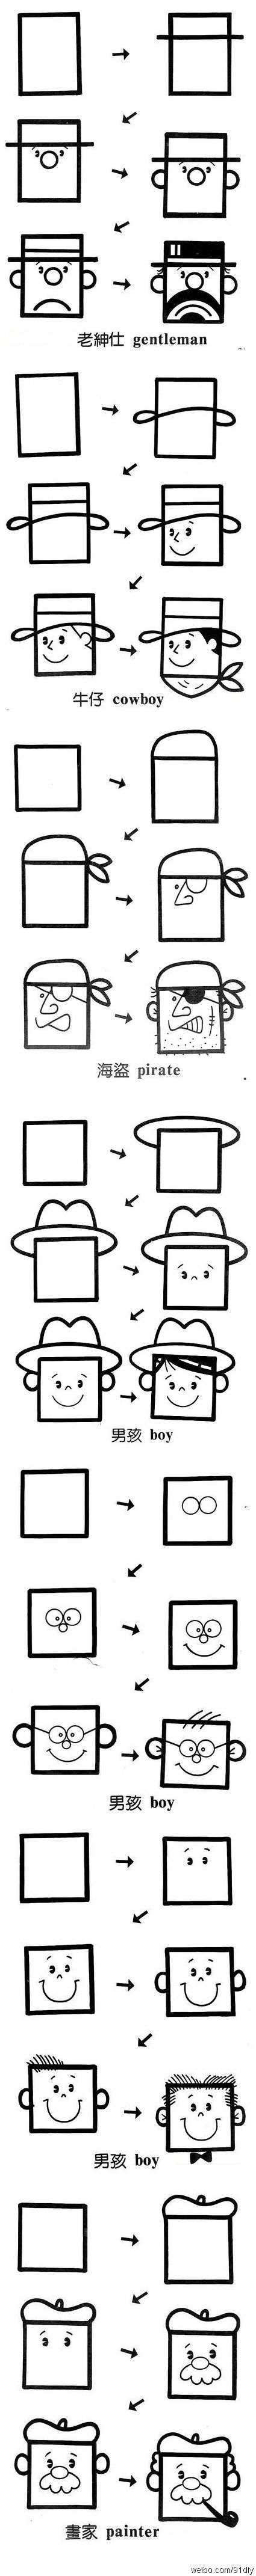 How To: Draw Silly Faces, Including a Pirate! #DIYfun